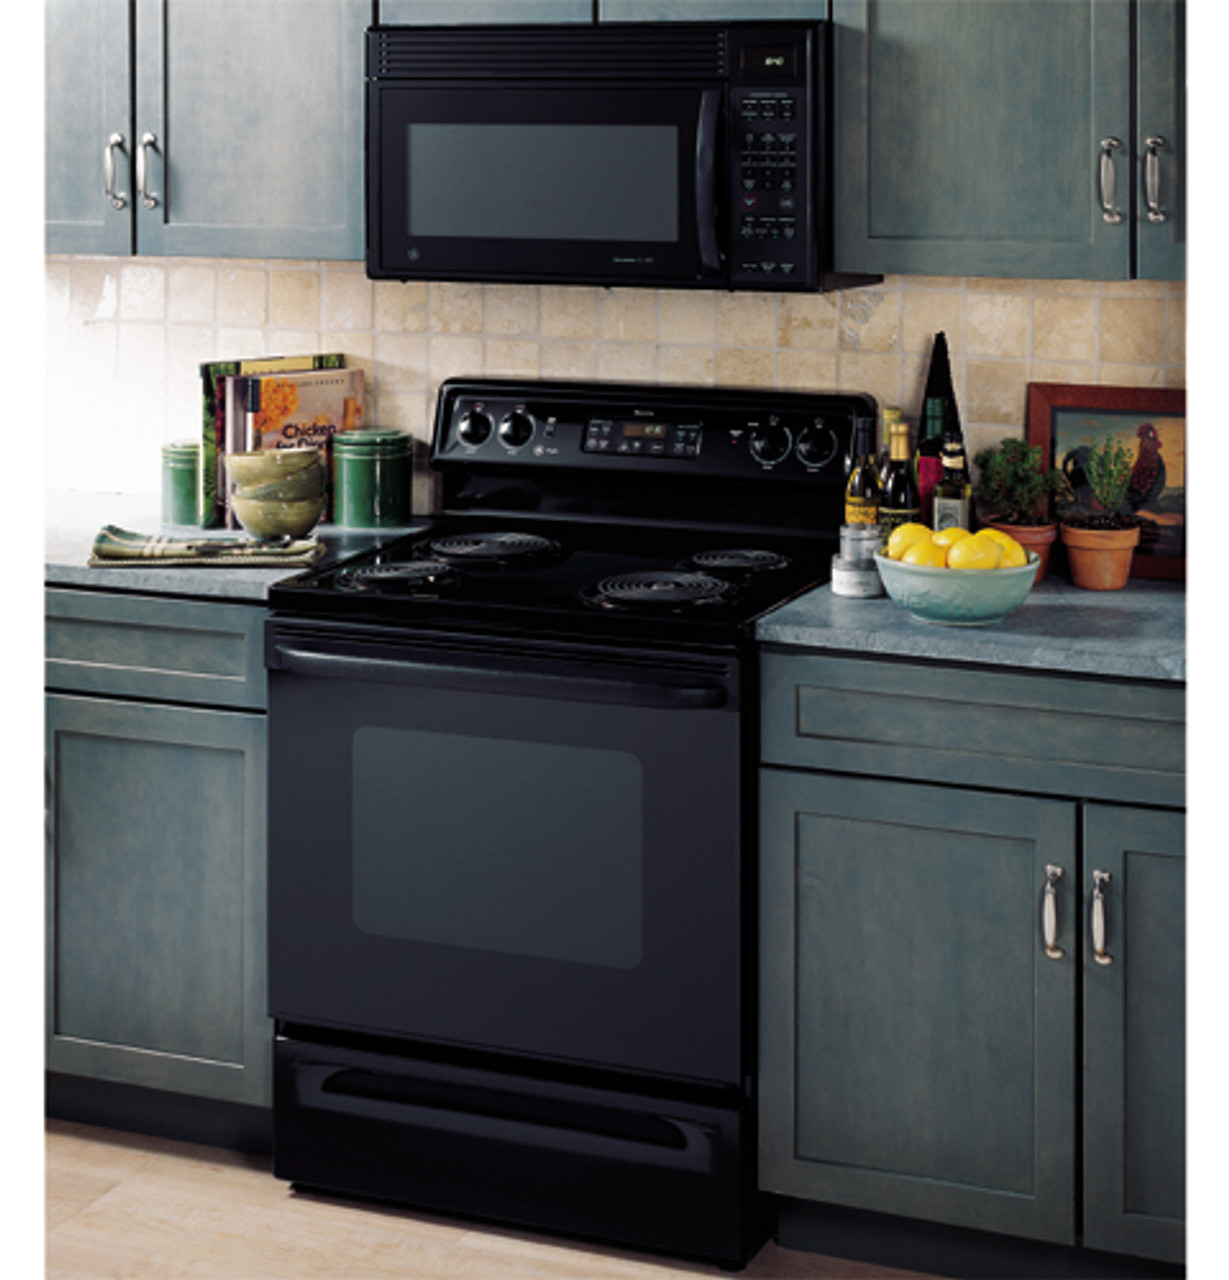 ge spacemaker xl1800 over the range microwave oven jvm1841bd